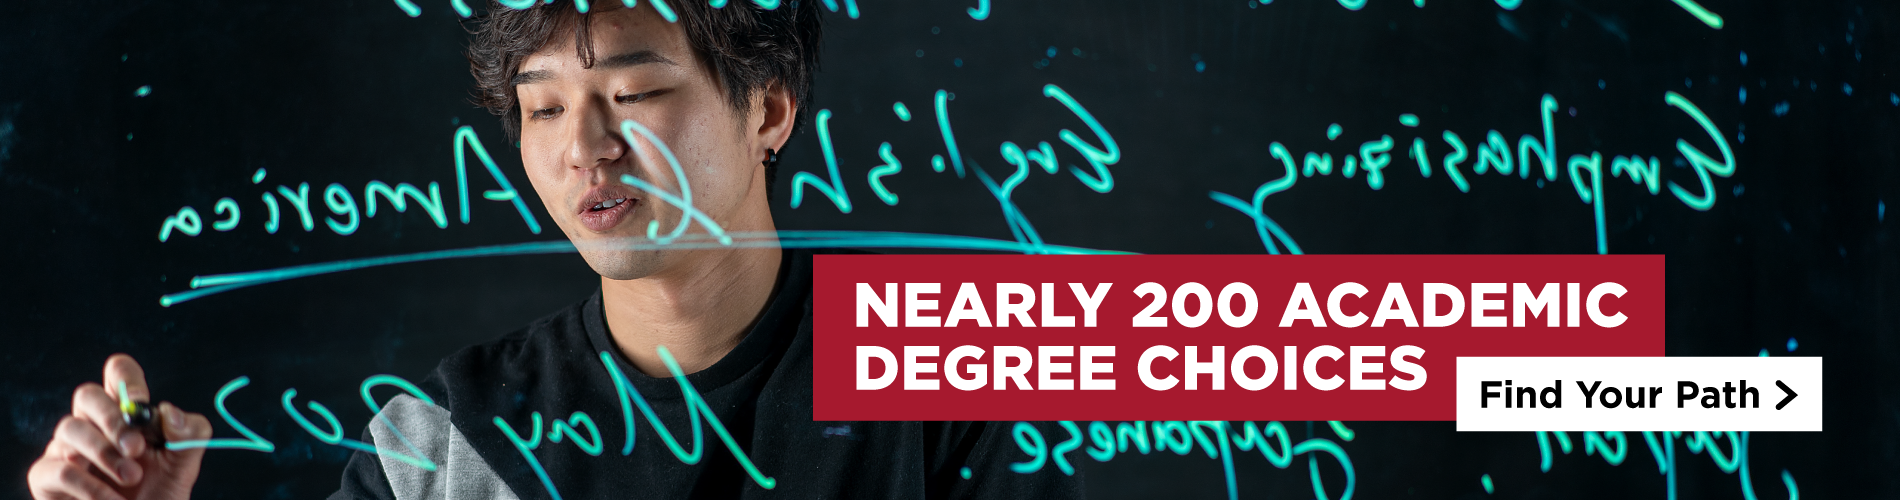 Nearly 200 Academic Degree Choices. Find Your Path.